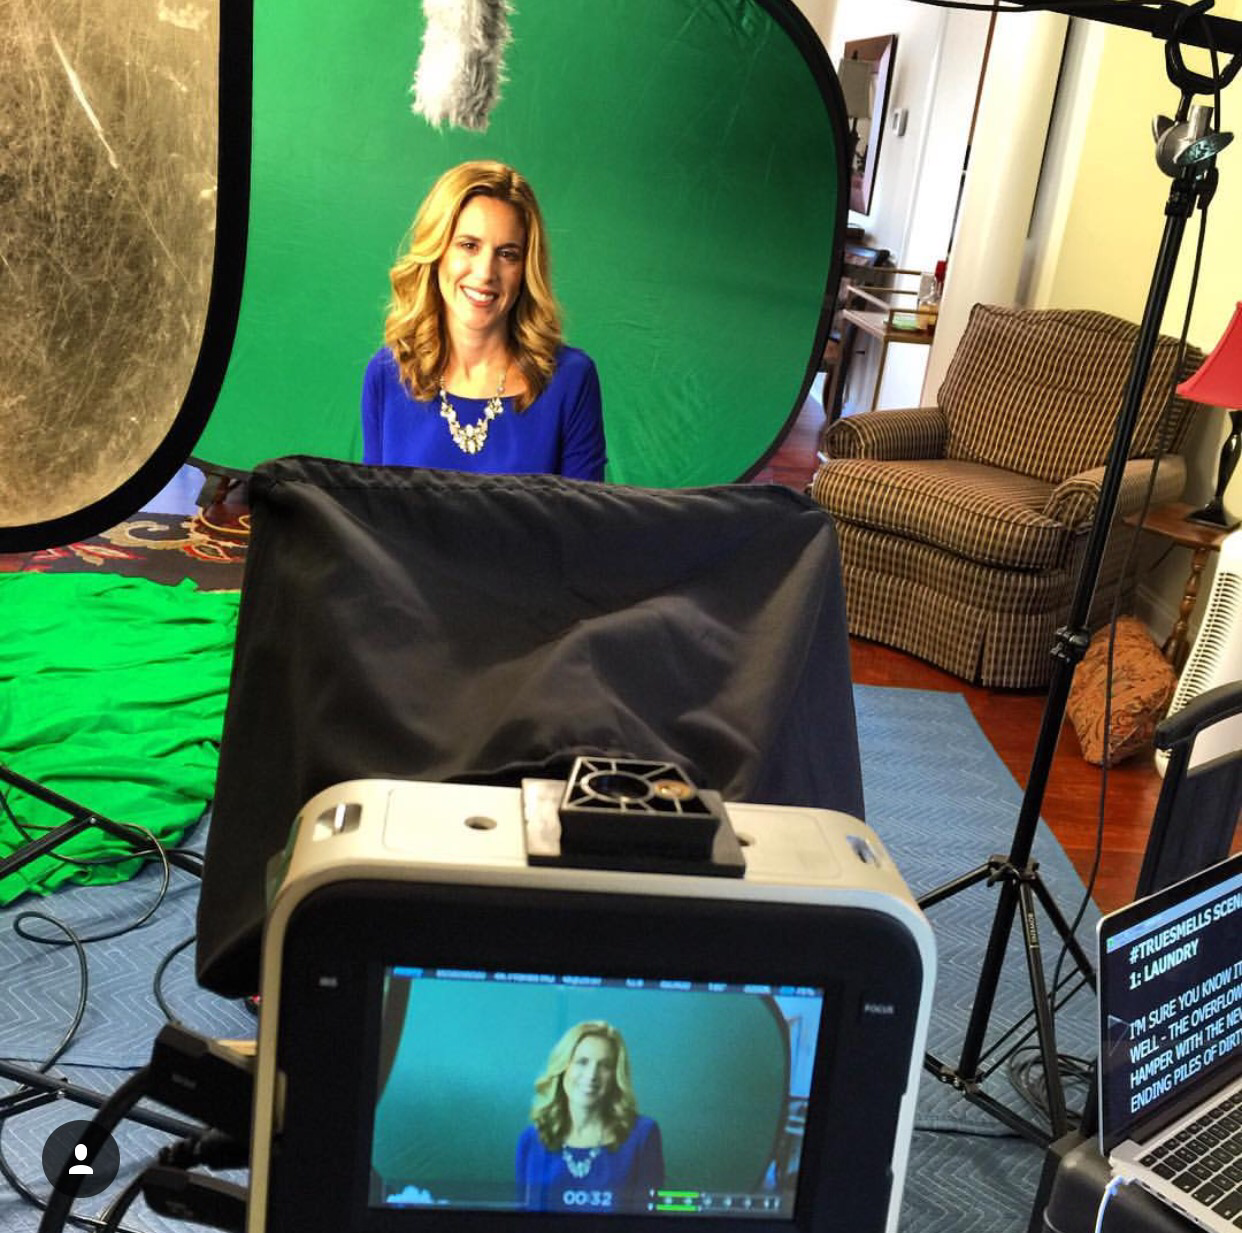 Behind the Scenes: Filming with Febreze Air Purifiers